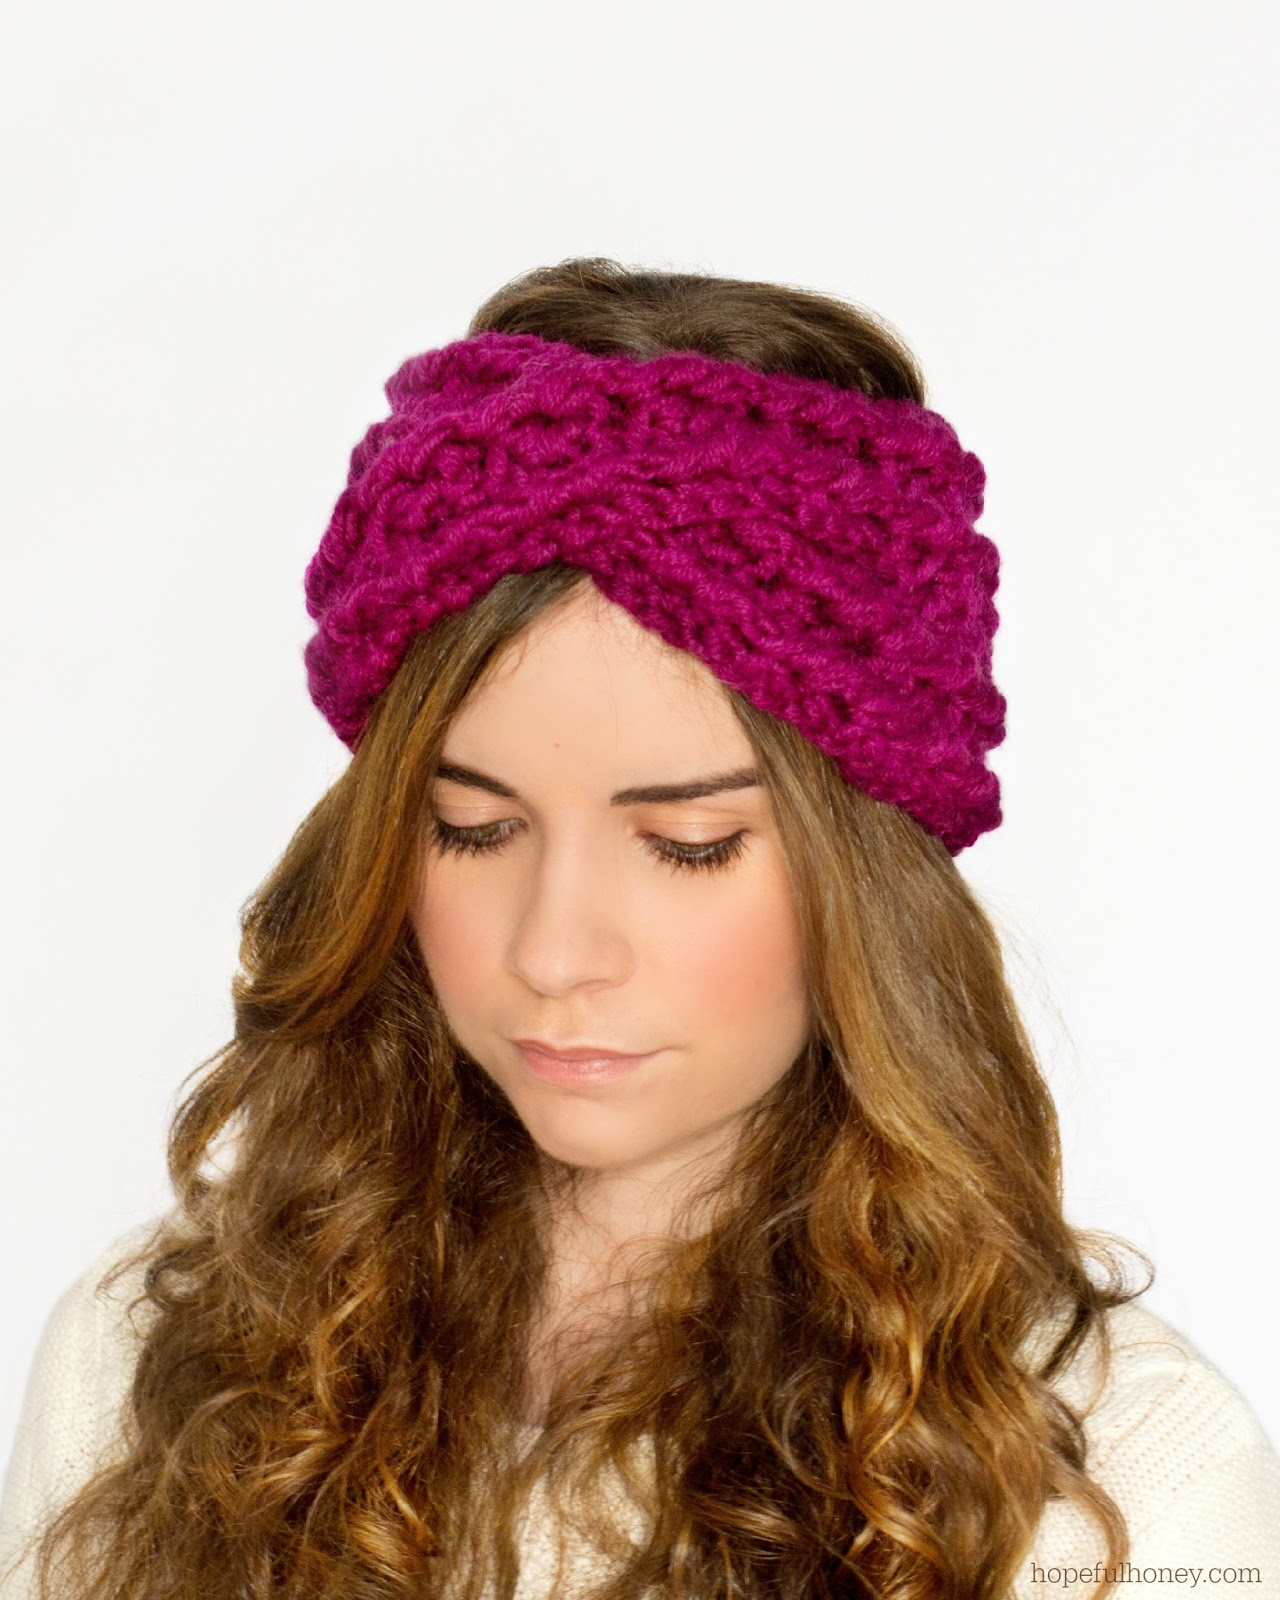 Headband Knitting Patterns Archives - The Funky Stitch